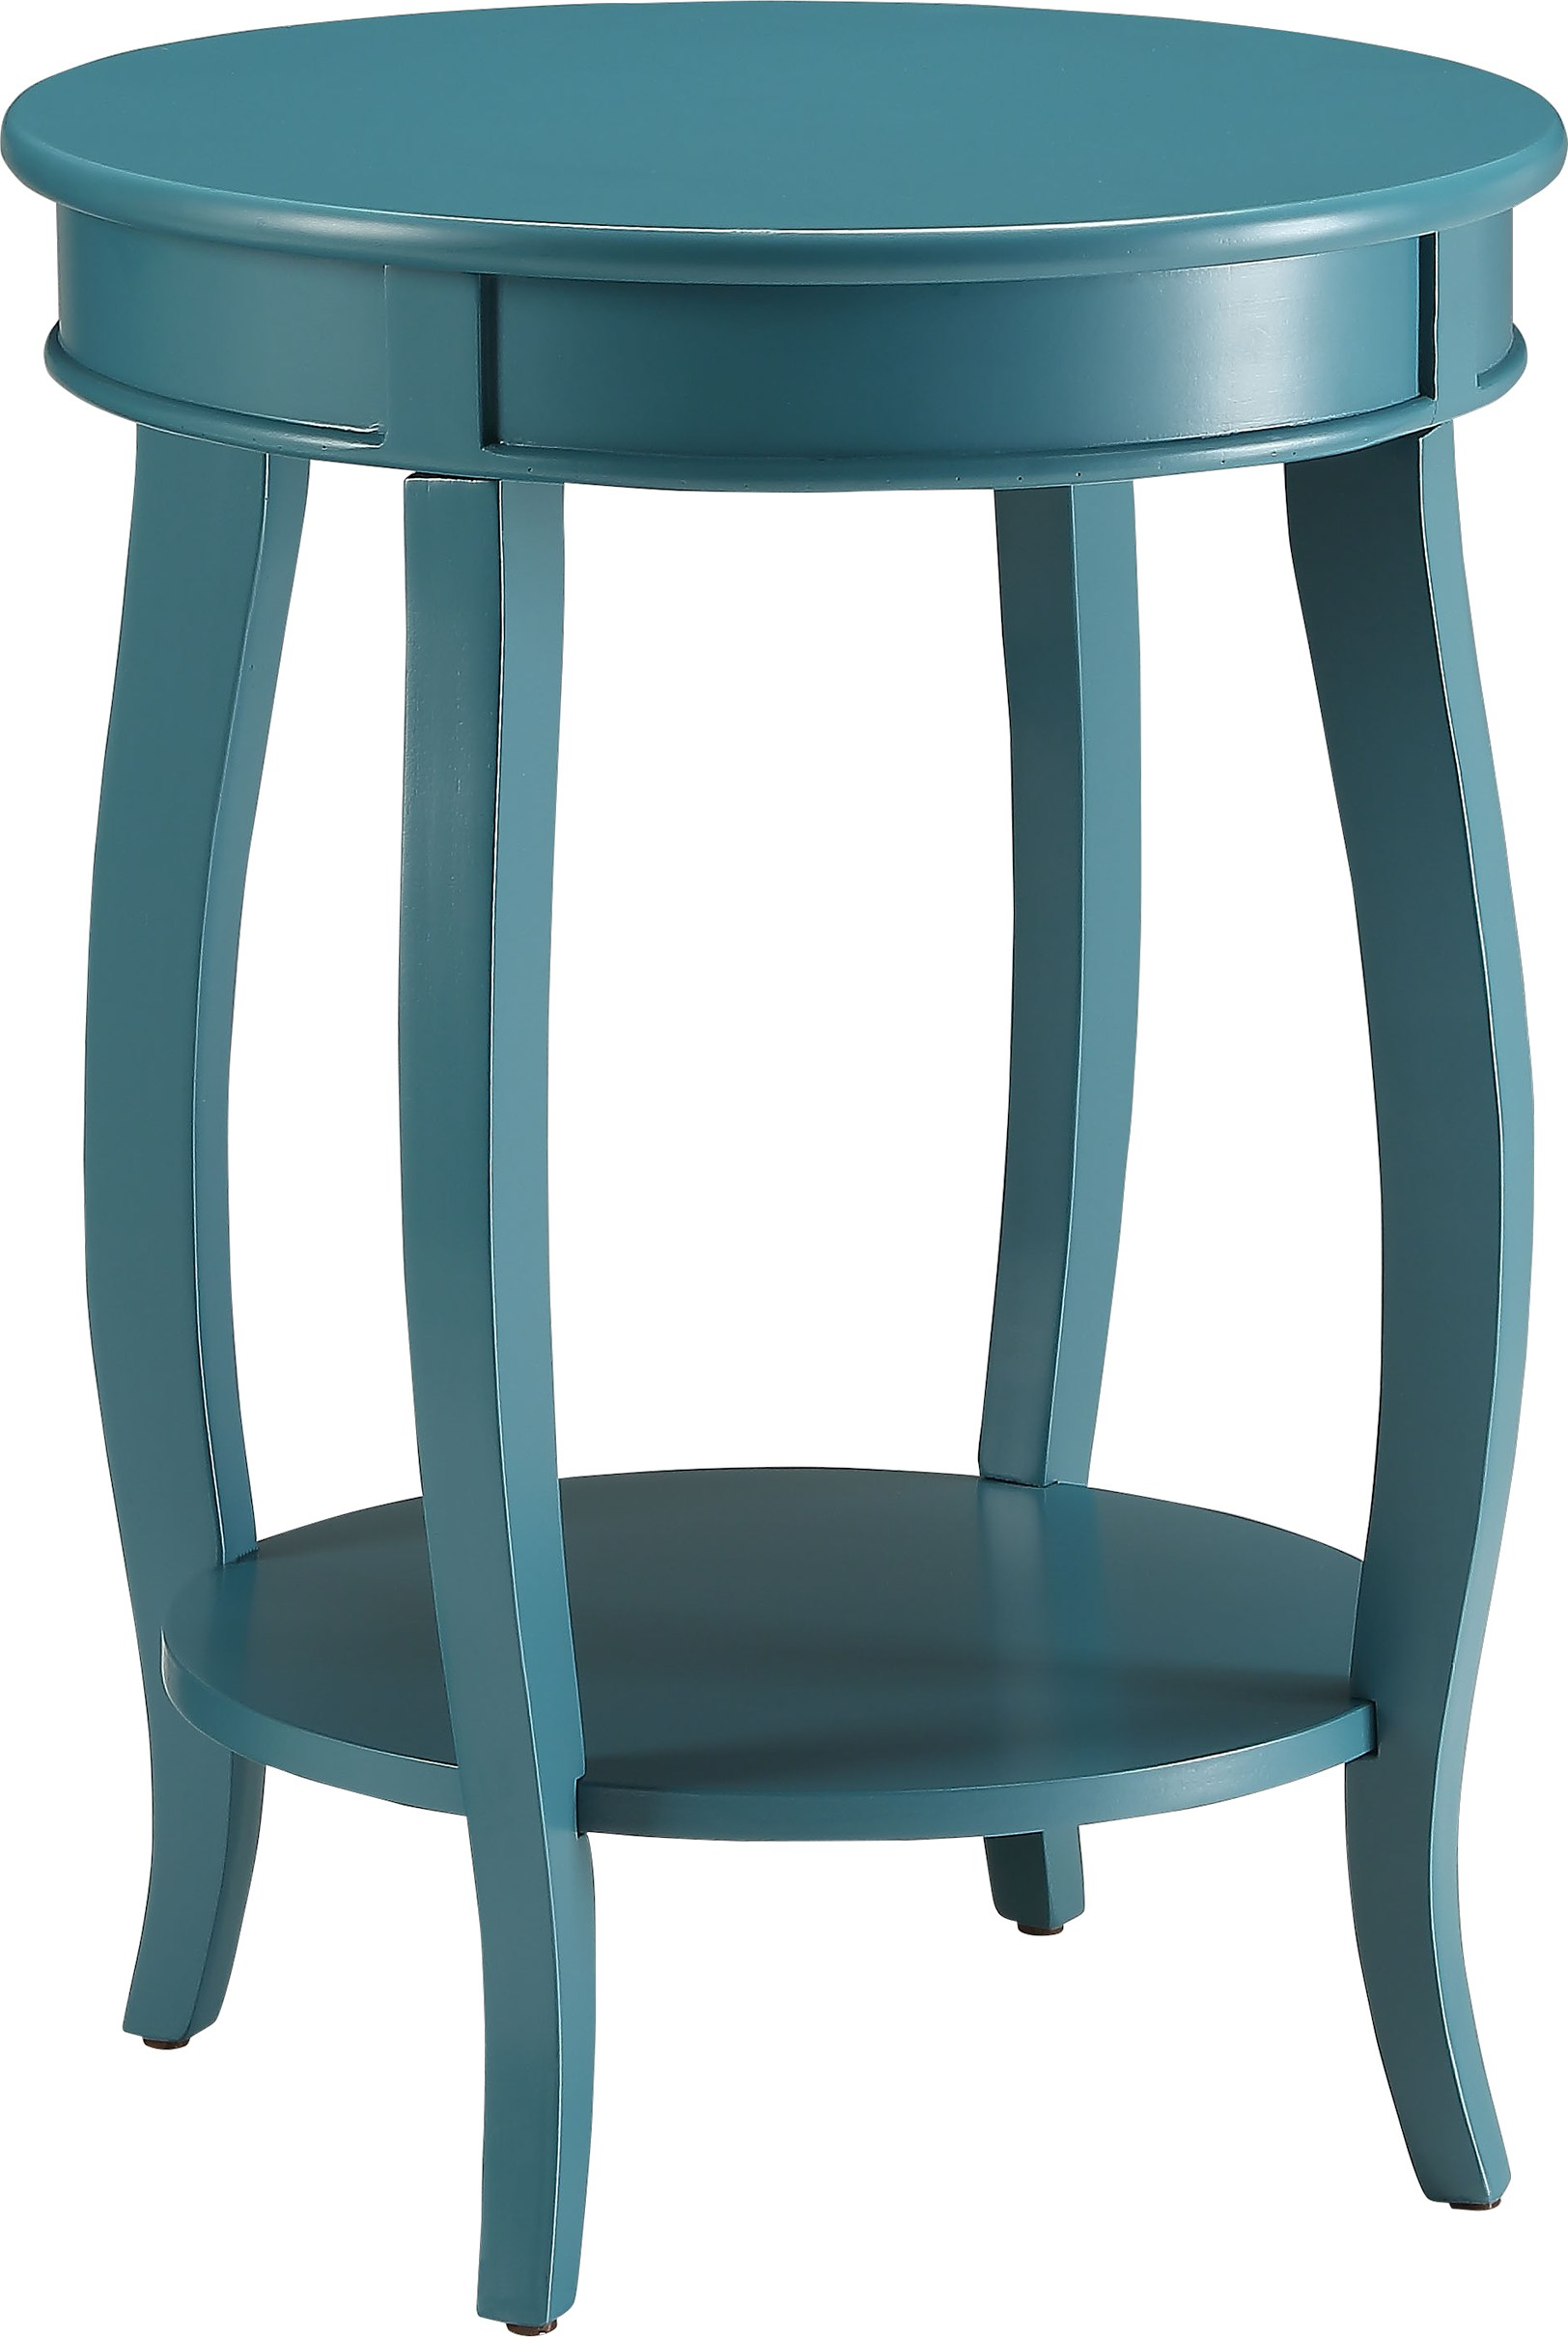 chloris blue accent table tables colors retro bedroom chair ashley furniture end coffee ellipsis office target threshold ott light mango wood cloth runners vinyl modern living